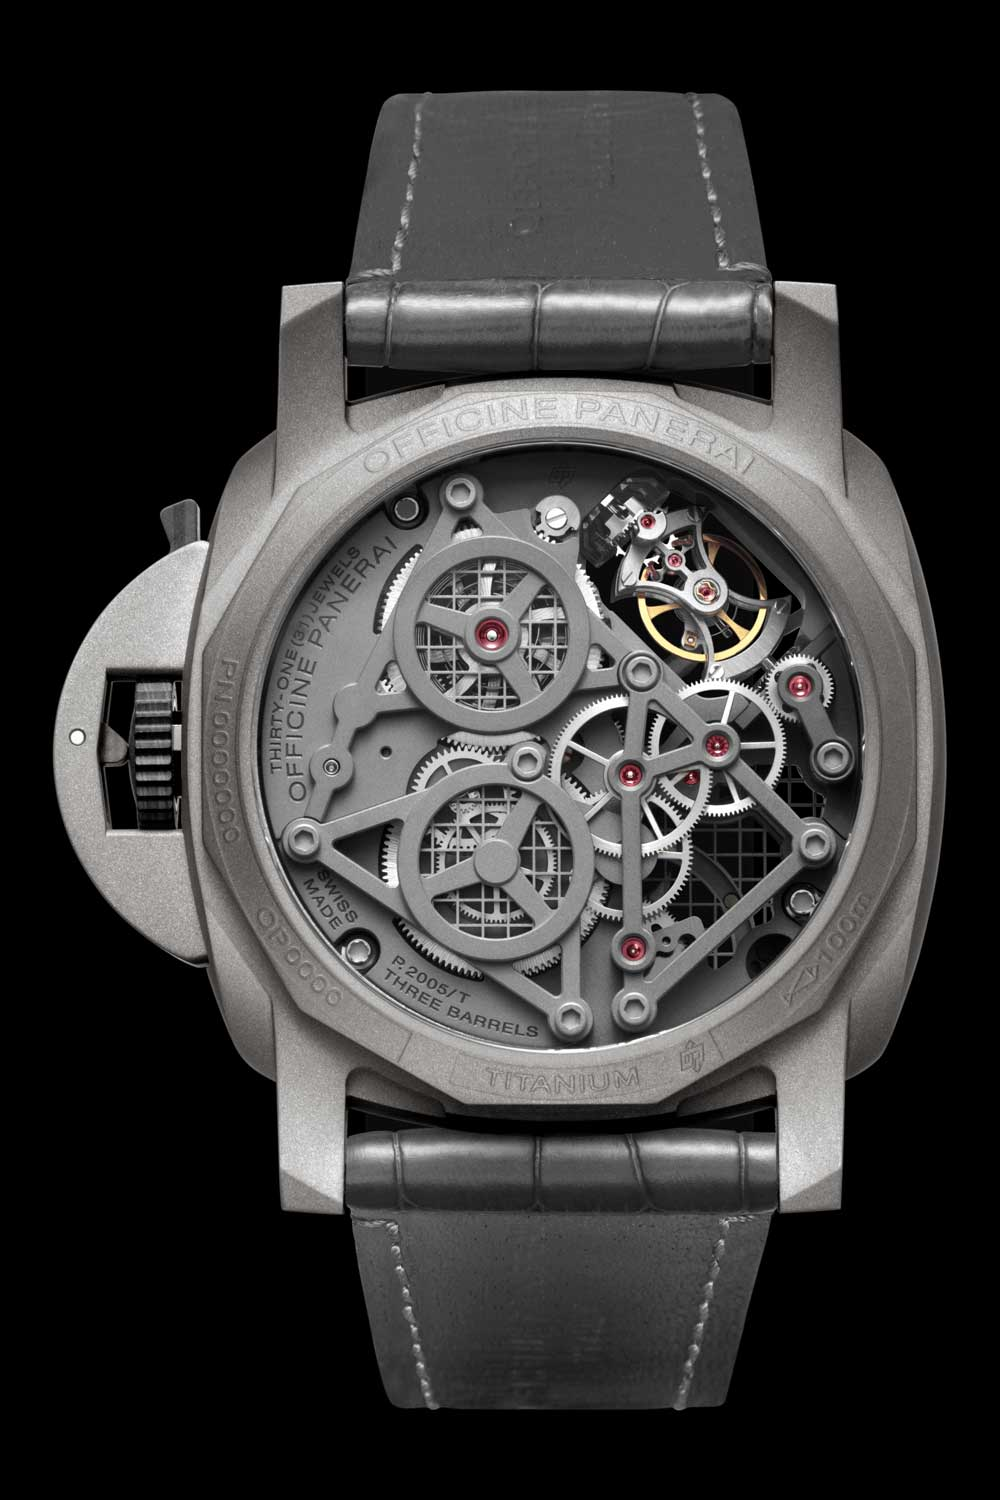 PAM00768 Lo Scienzato Luminor Tourbillon GMT 47mm